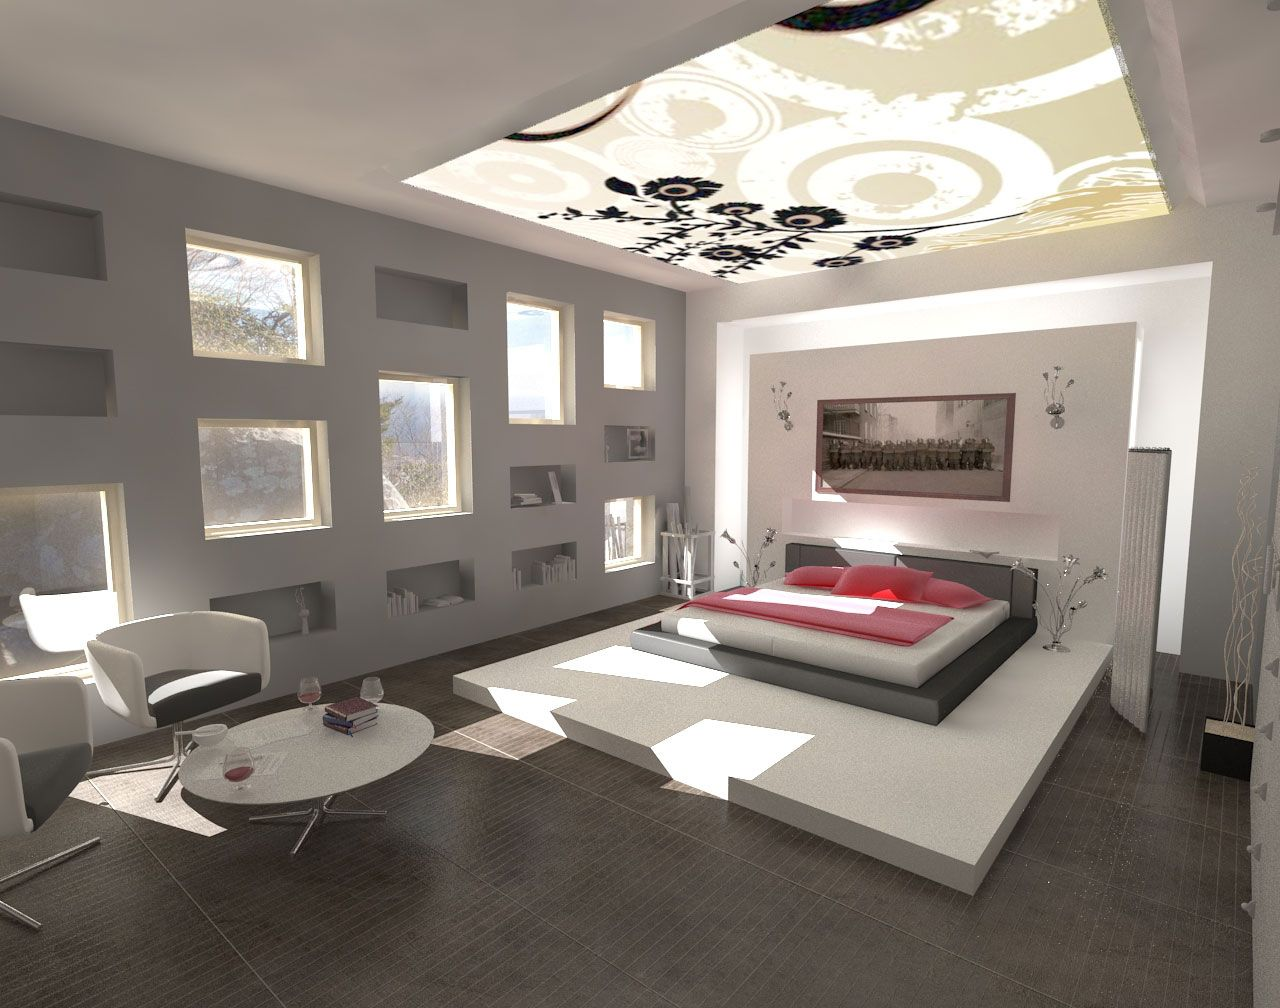 interior design ideas for your home - 1000+ images about Bedroom on Pinterest omantic bedroom design ...